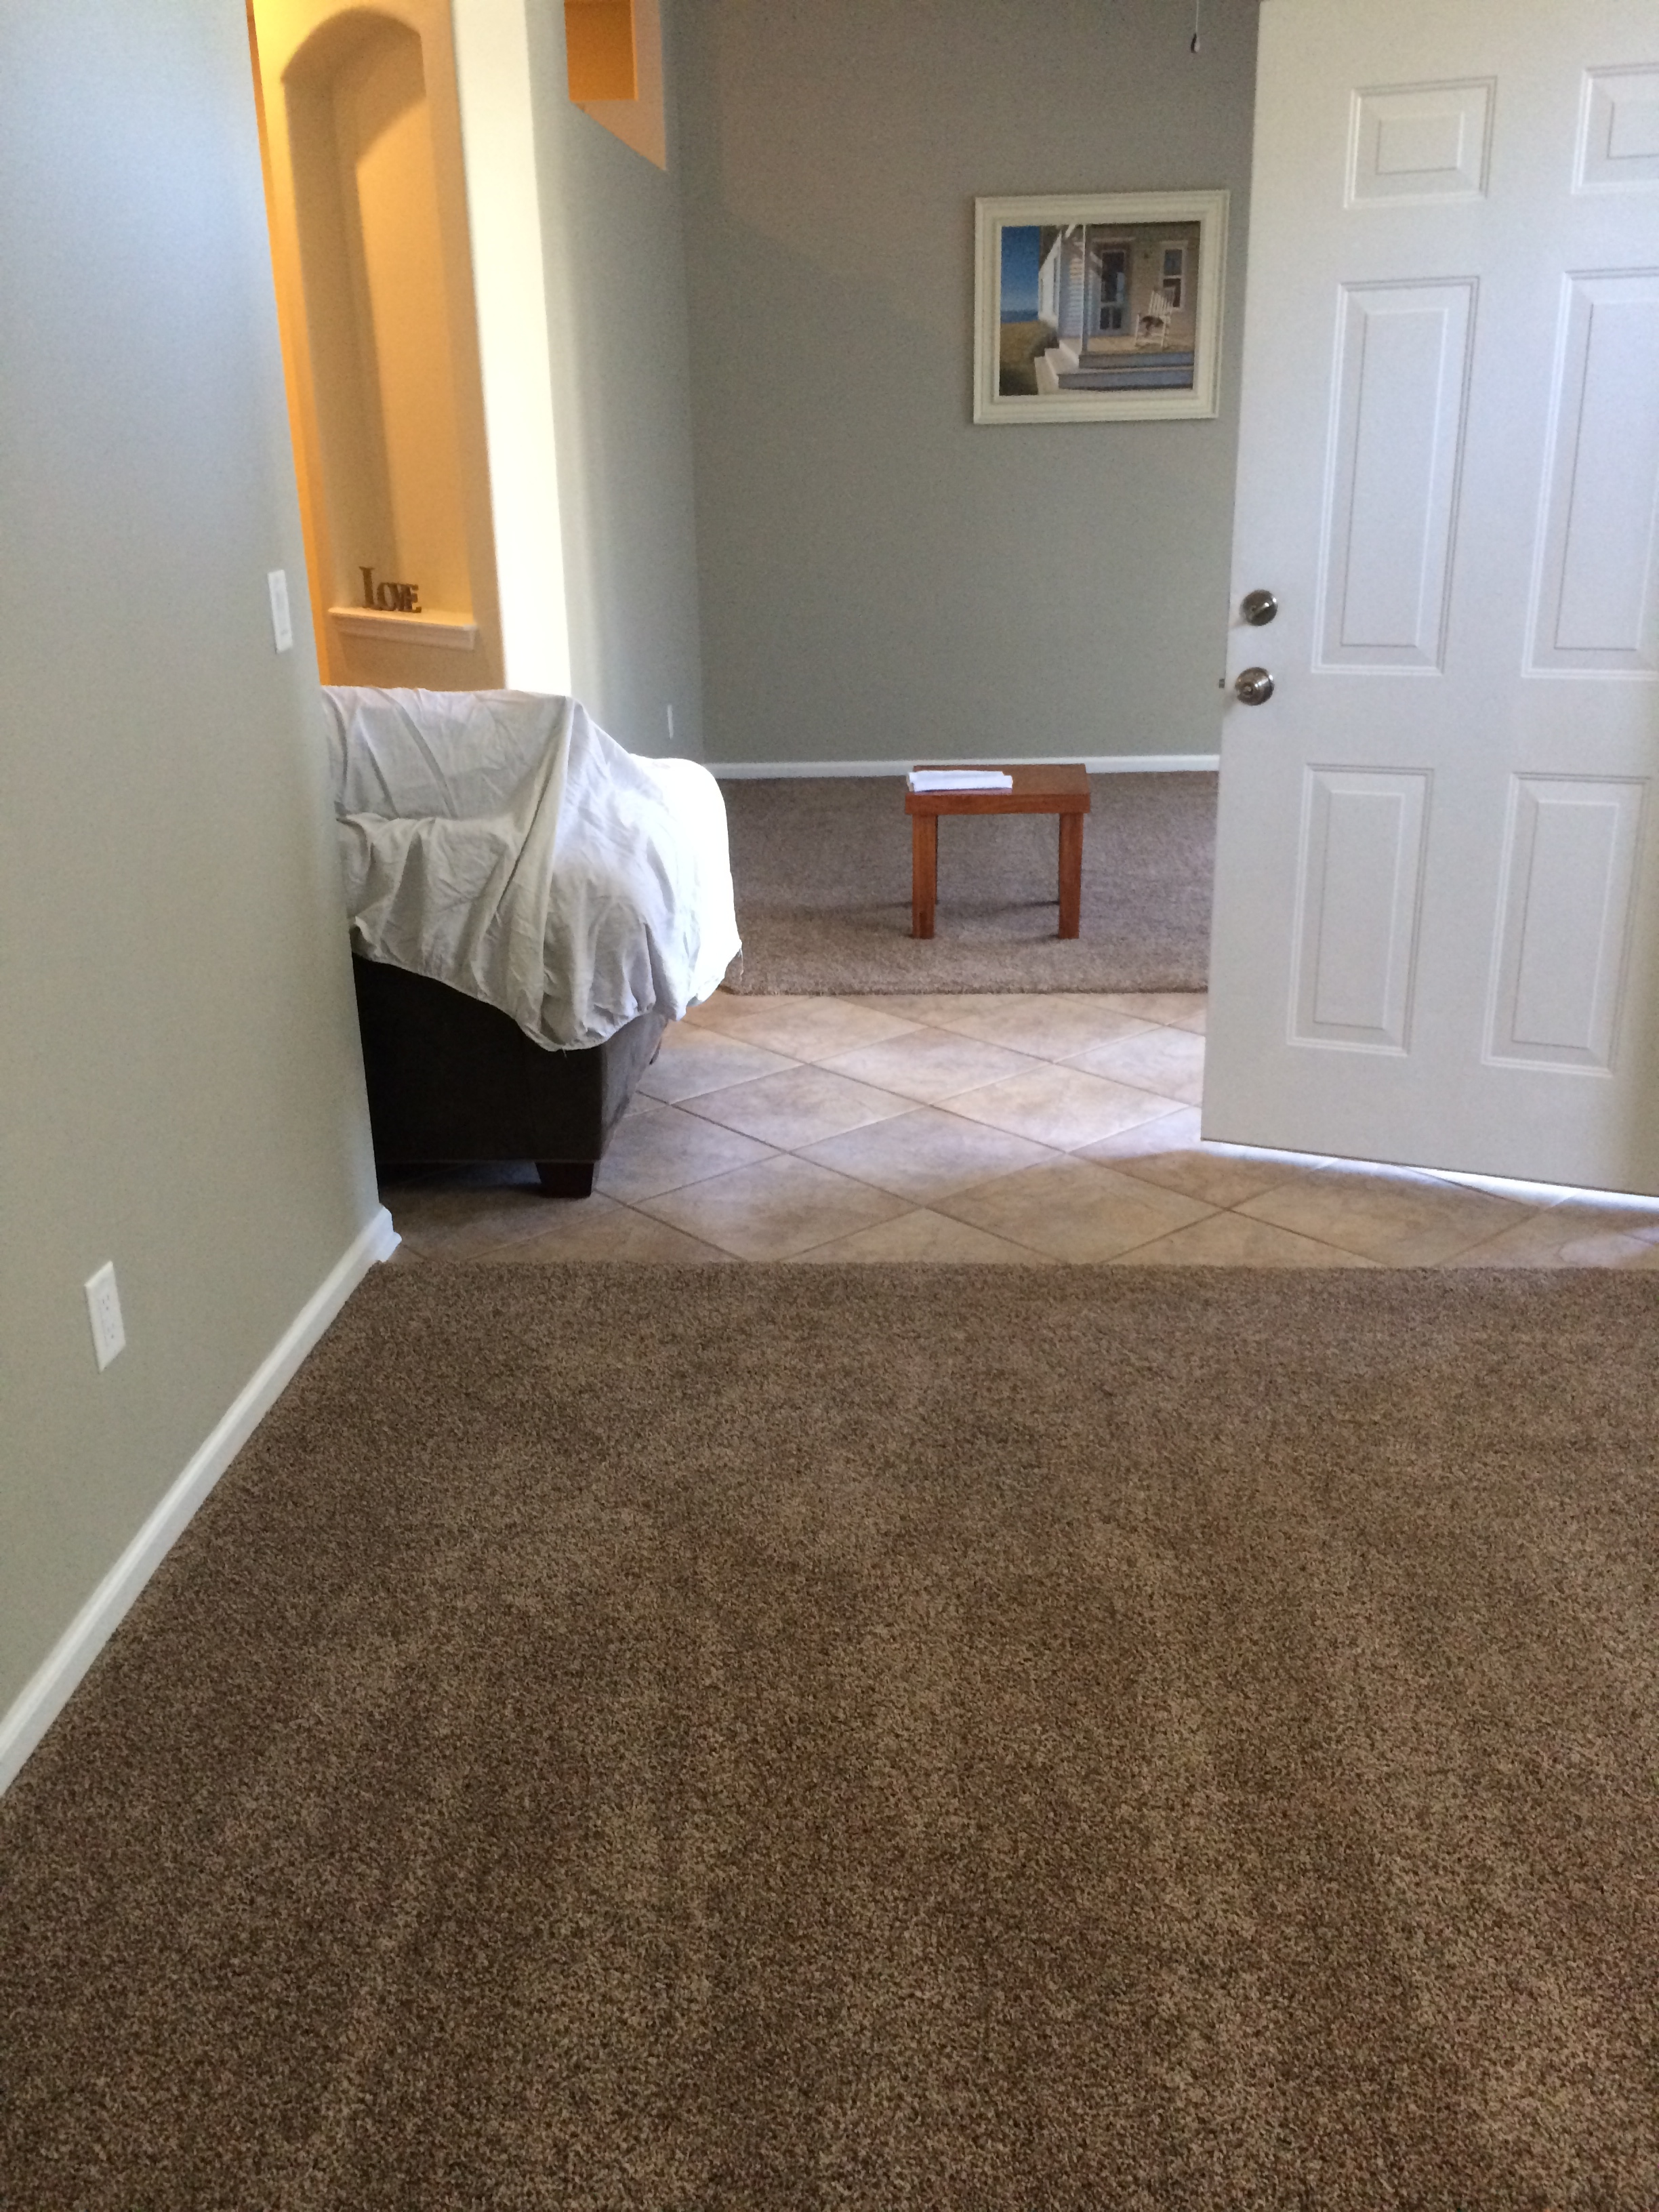 Home Decor Yellow And Gray Installing Carpet The Mace Place